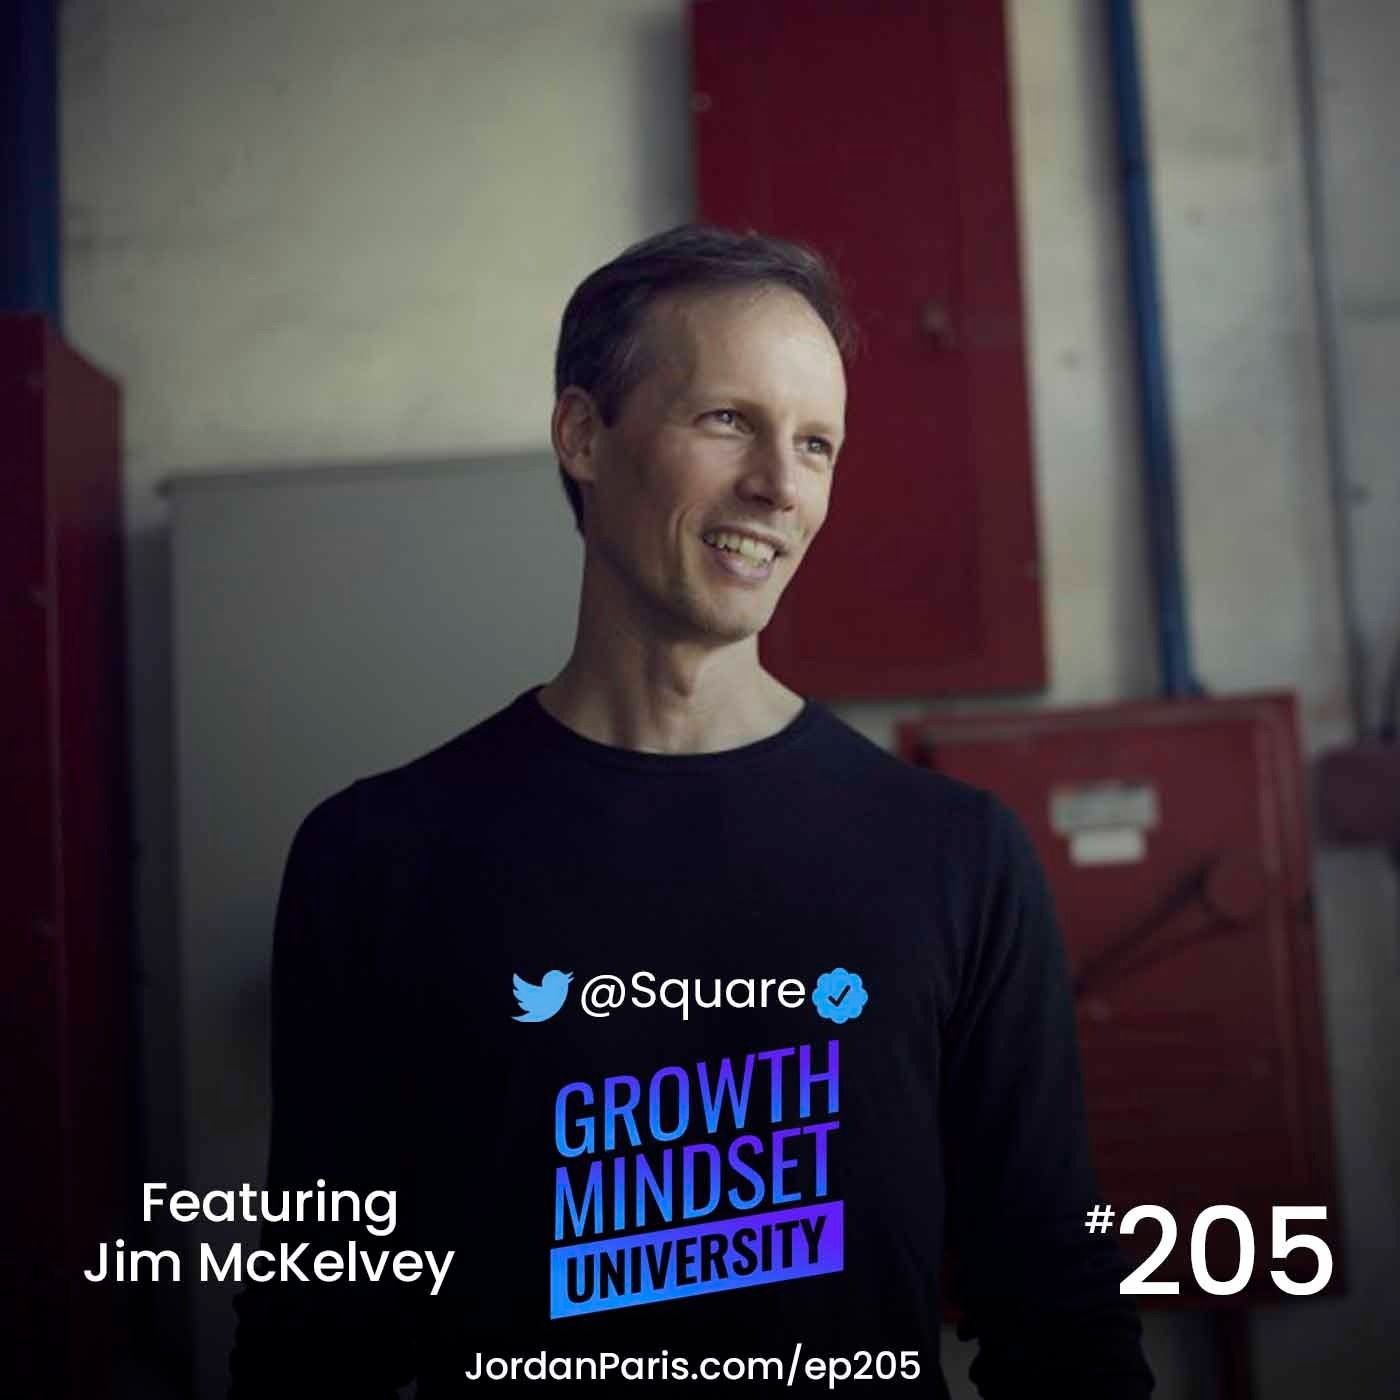 Square Co-Founder Jim McKelvey on Copying, True Entrepreneurship, and Building a World-Changing Company